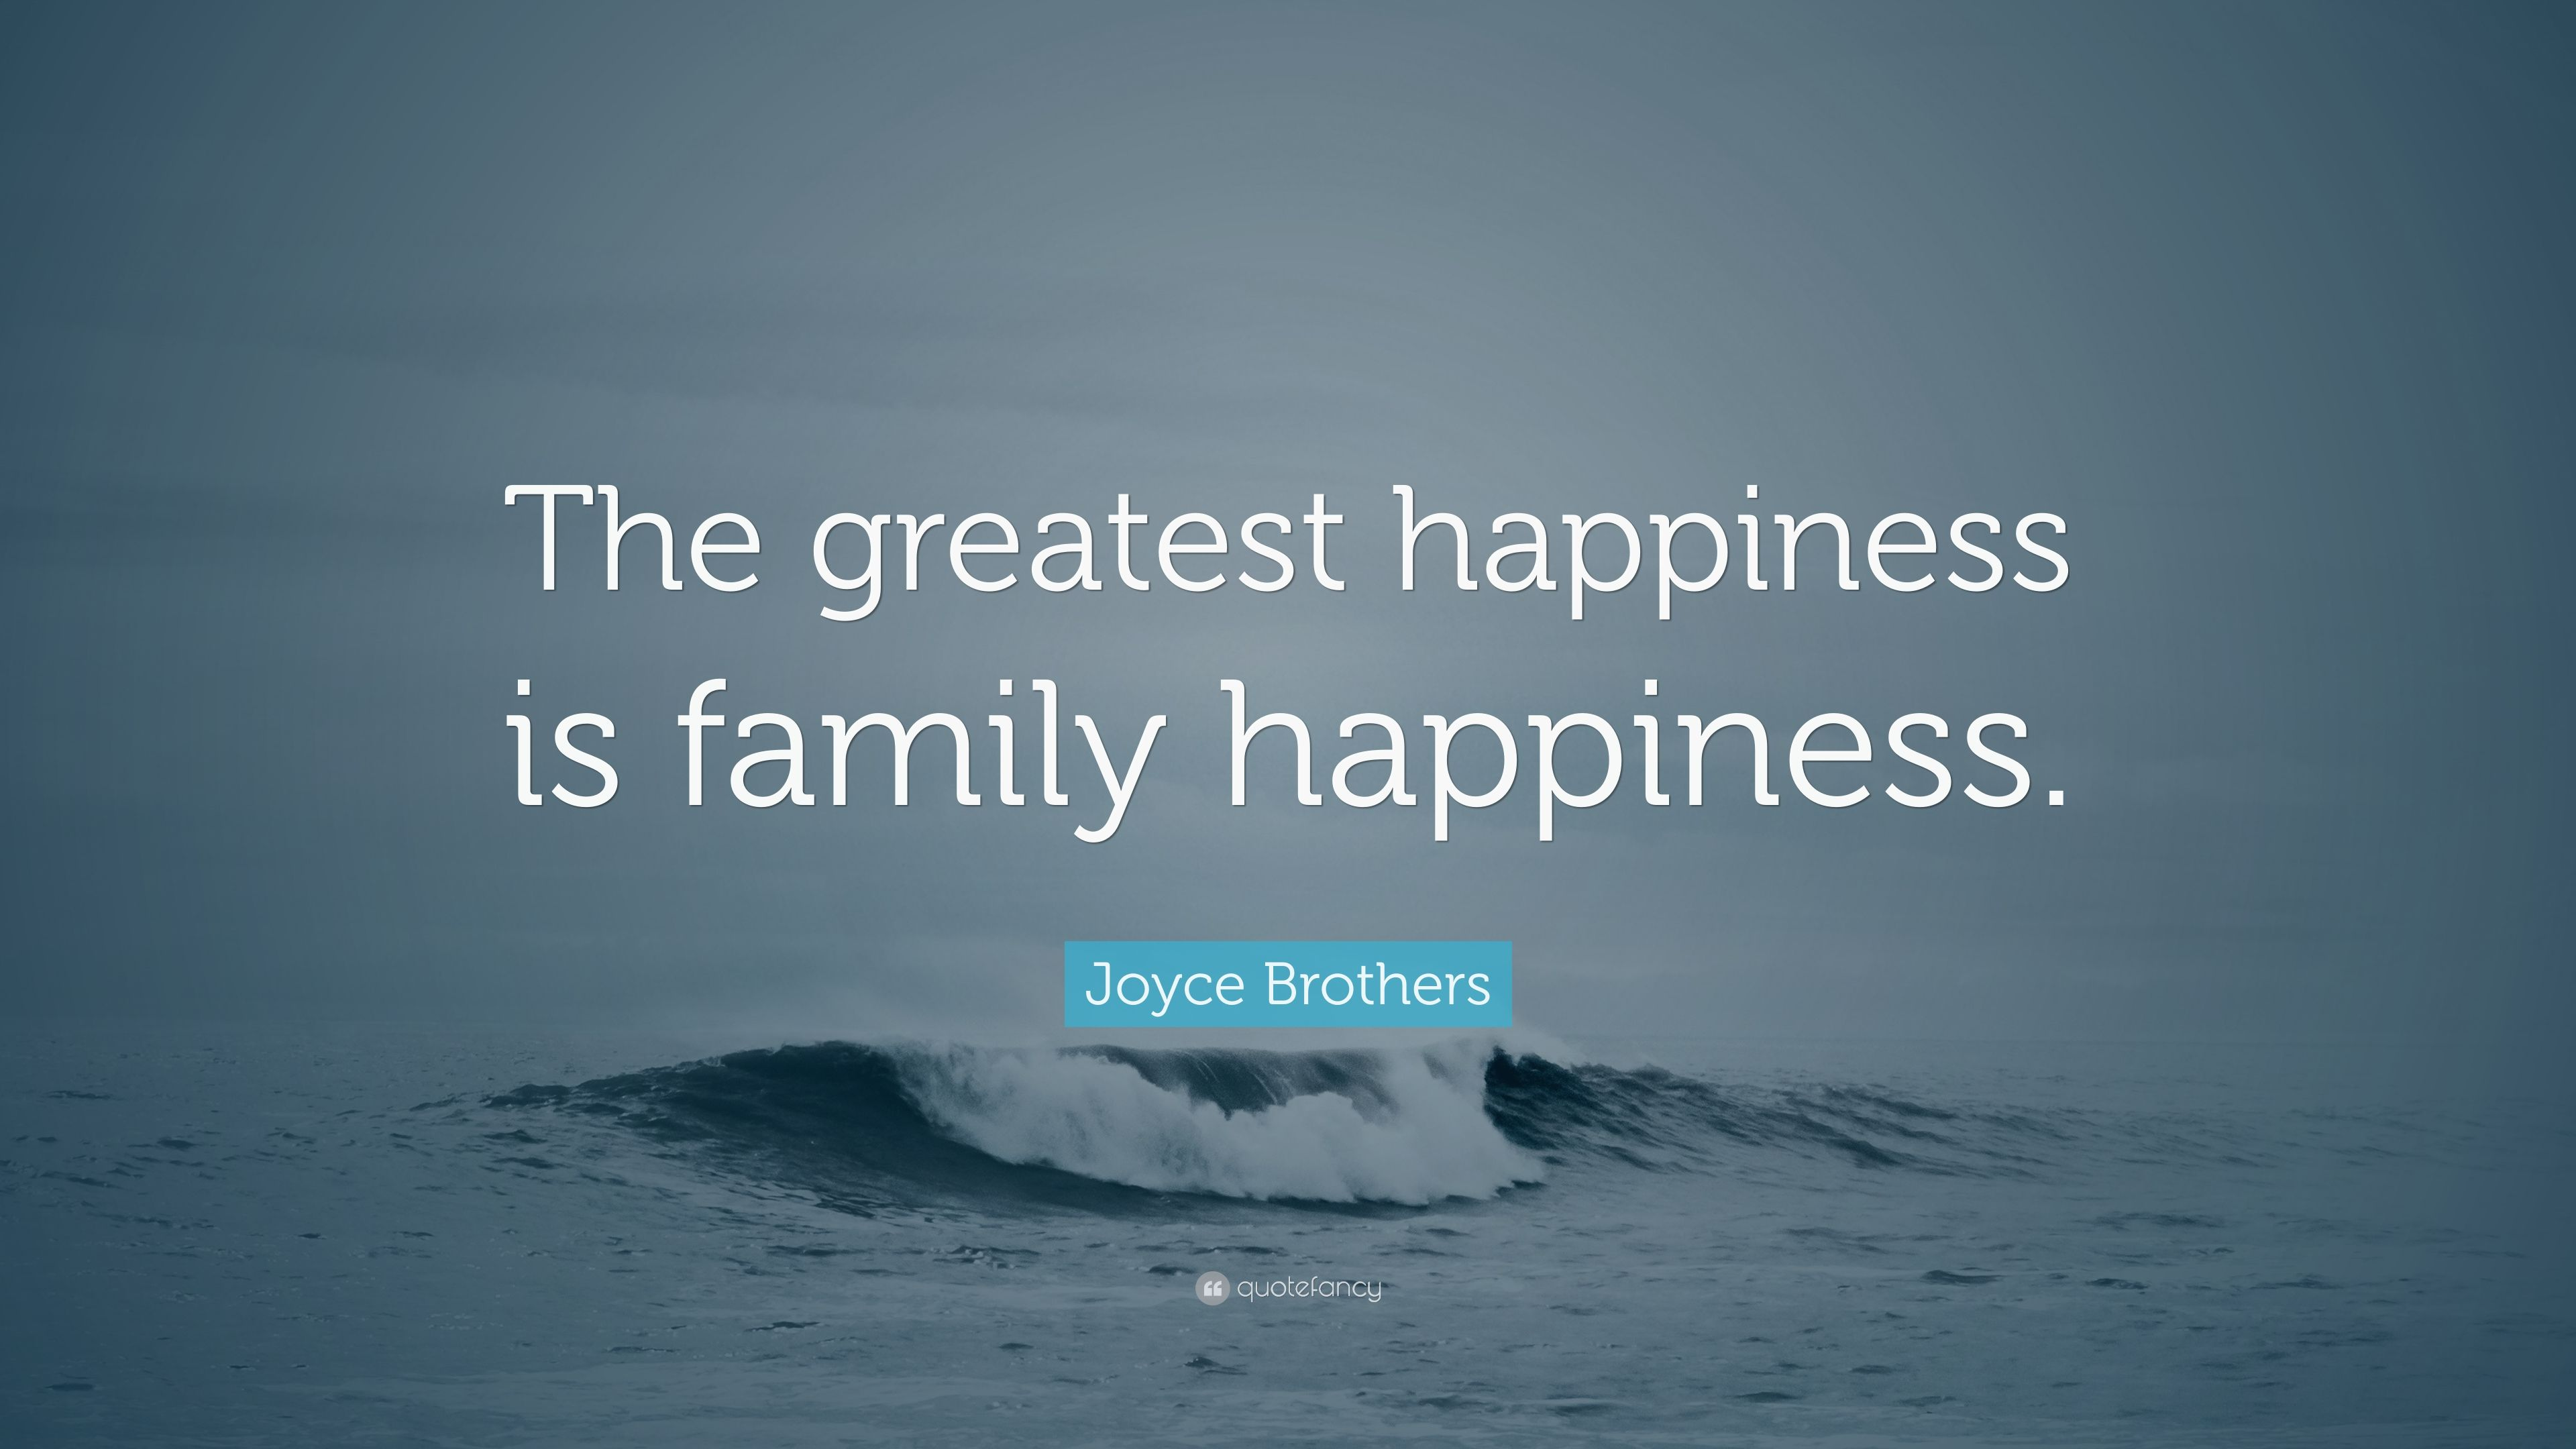 Image of: Images Joyce Brothers Quote the Greatest Happiness Is Family Happiness Quotefancy Joyce Brothers Quote the Greatest Happiness Is Family Happiness